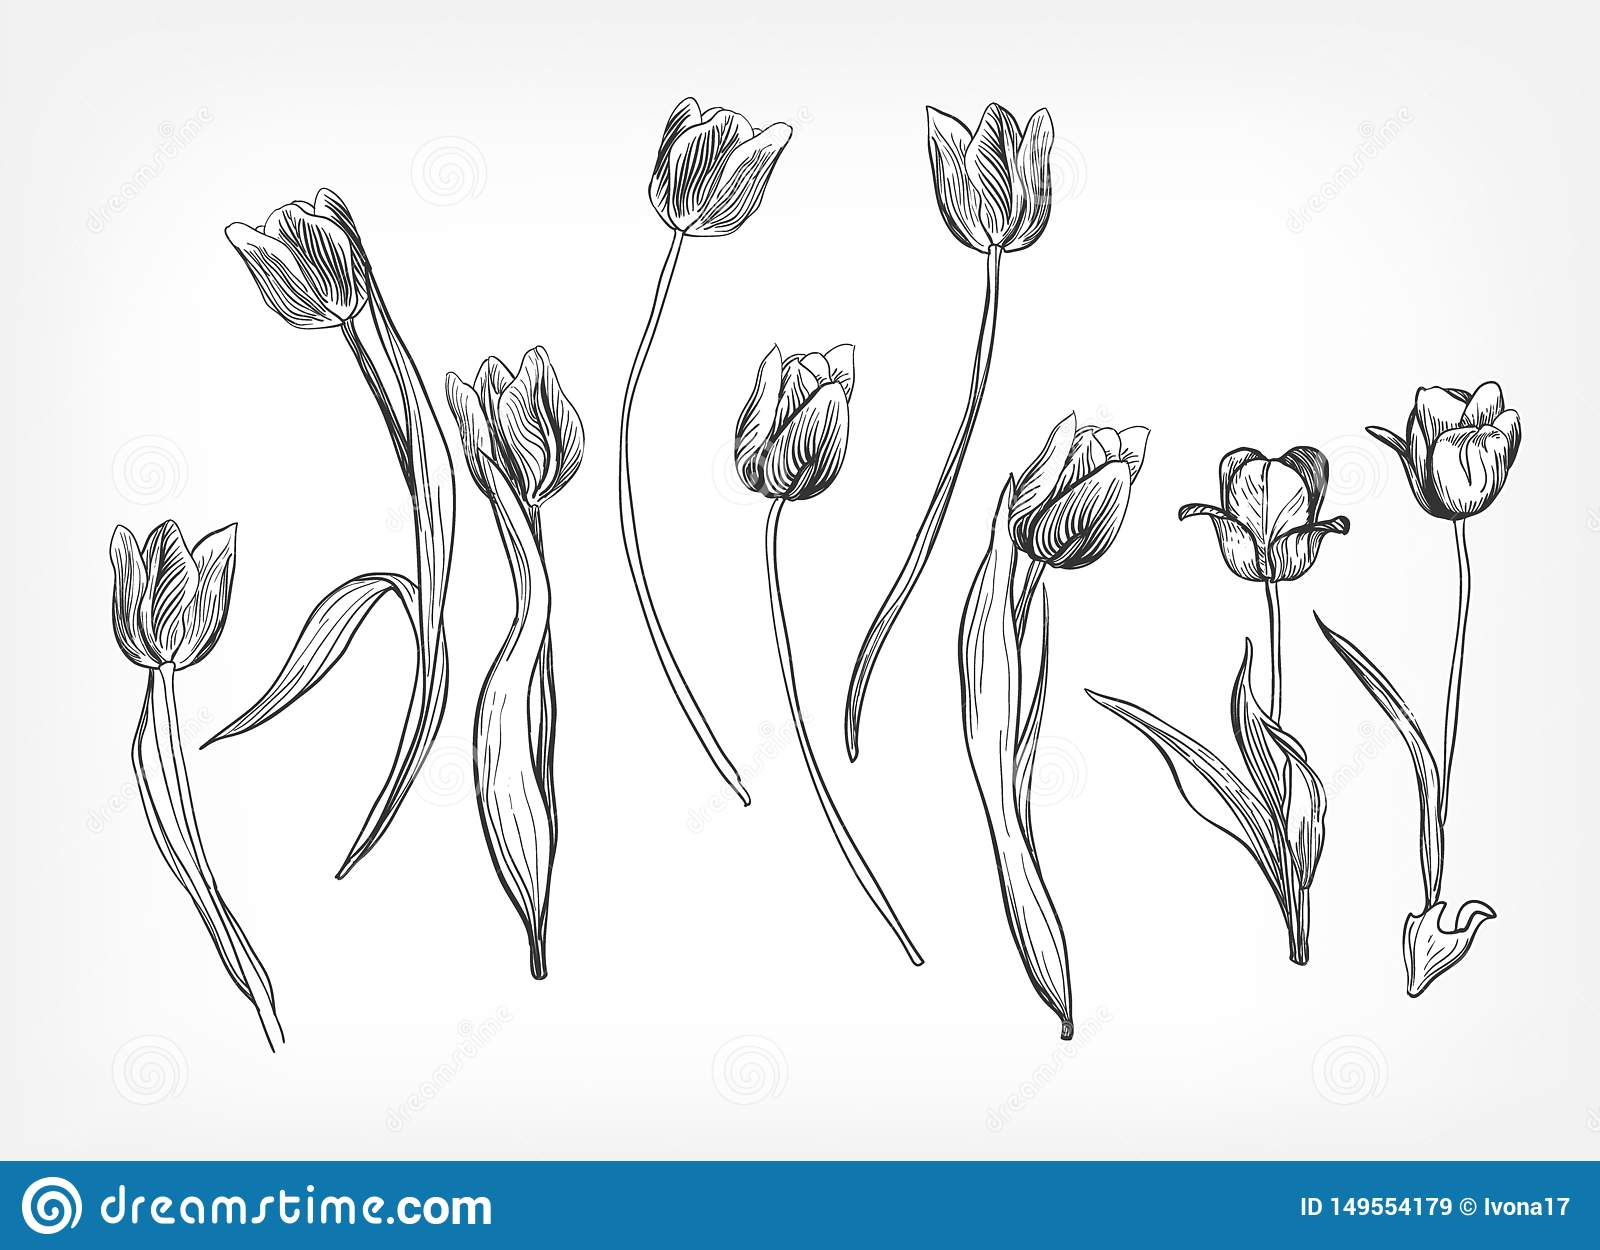 Tulips vector design elements simple sketch isolated